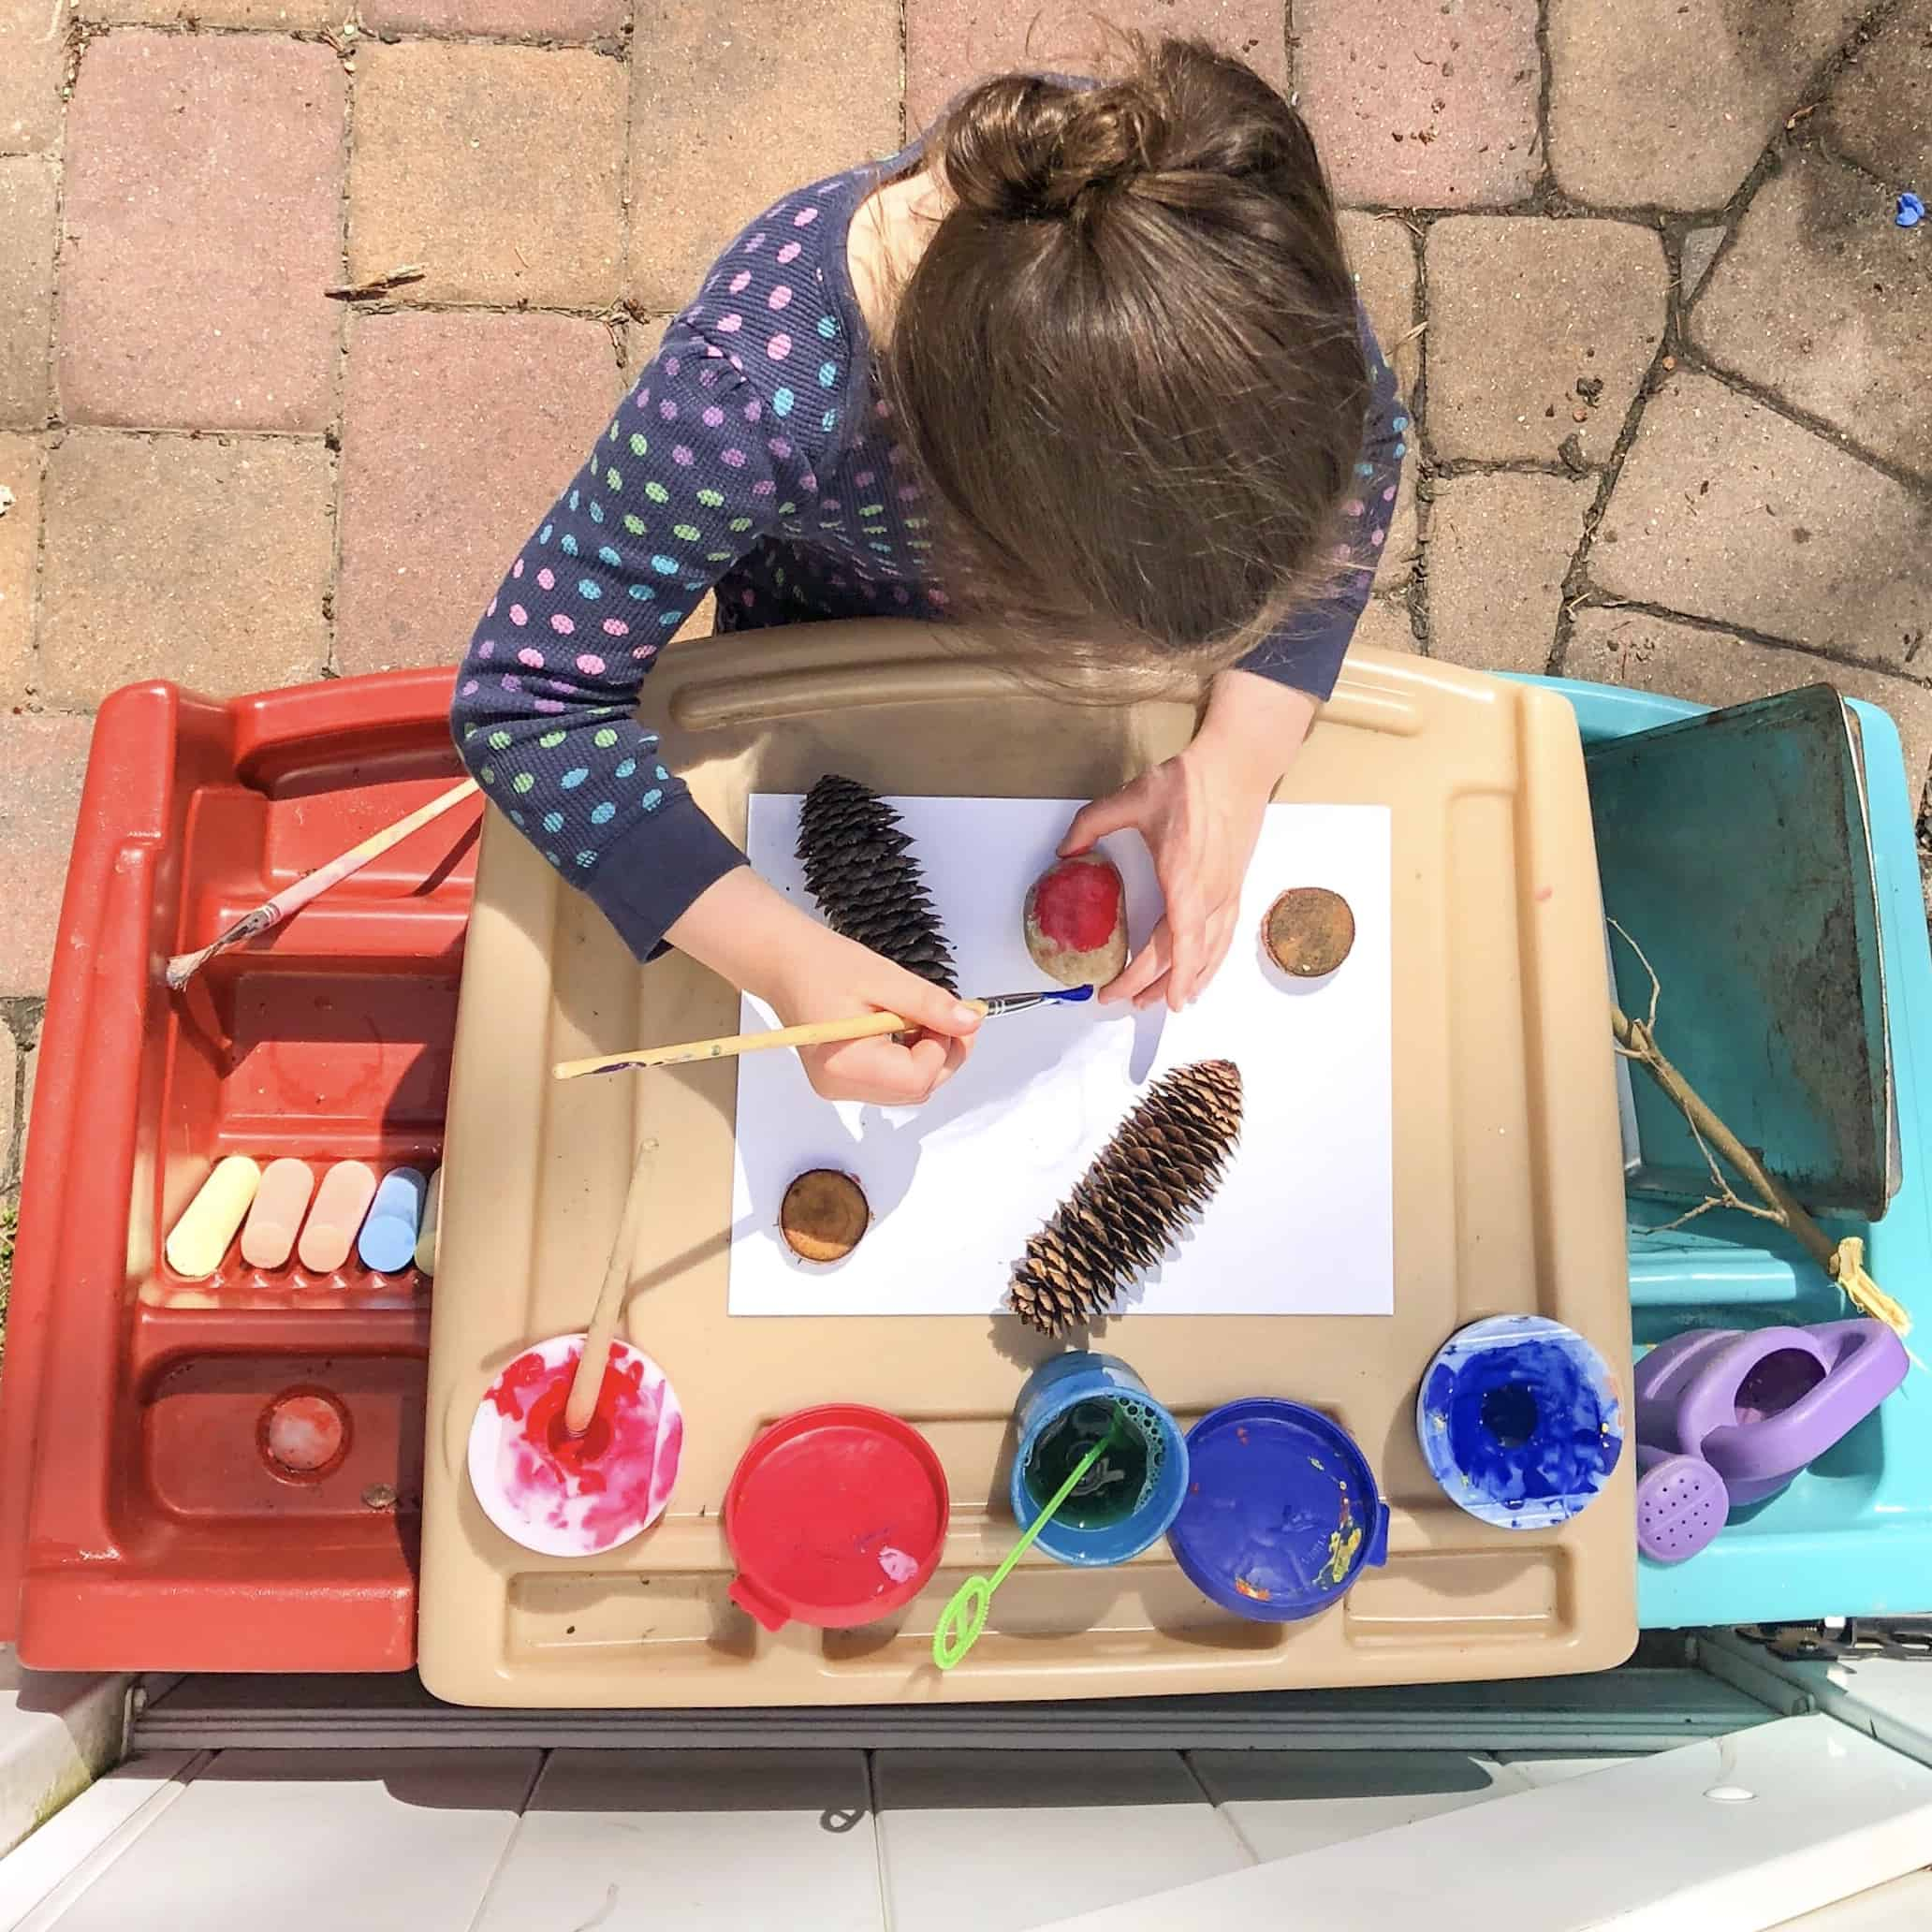 Setting Up an Inviting Backyard Art Area for Kids